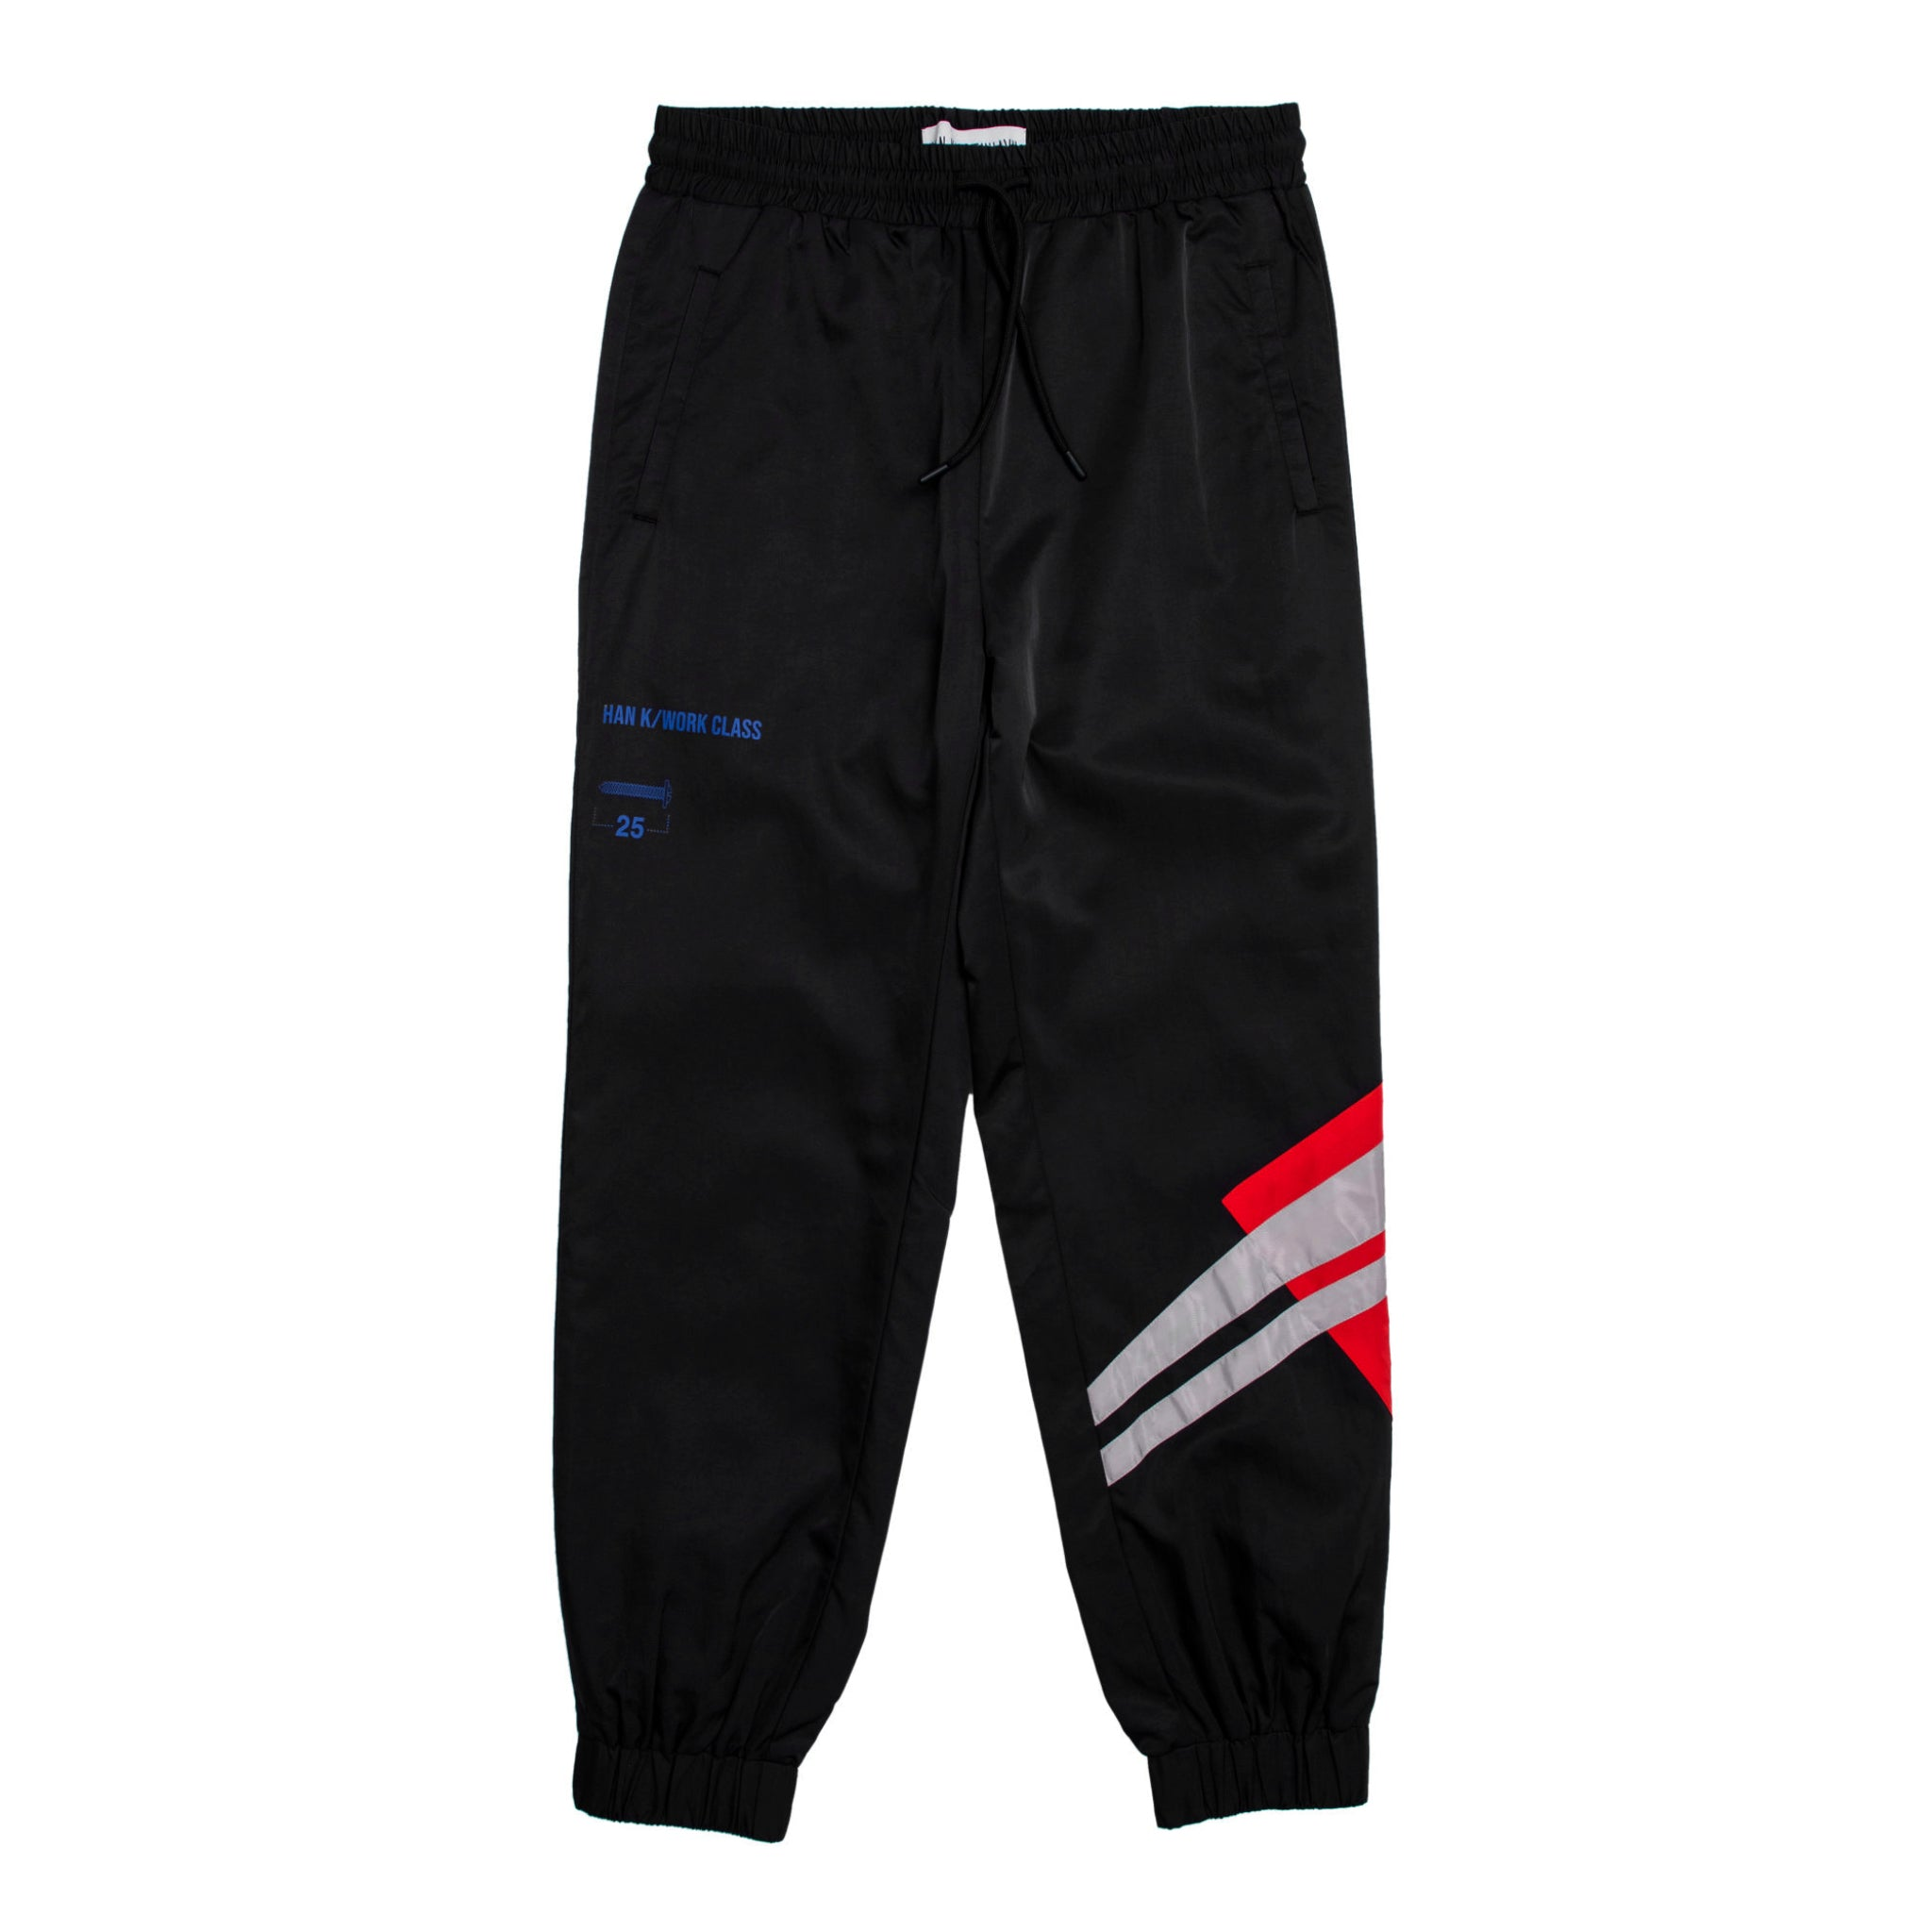 Han Kjobenhavn Track pants Black/Red/White